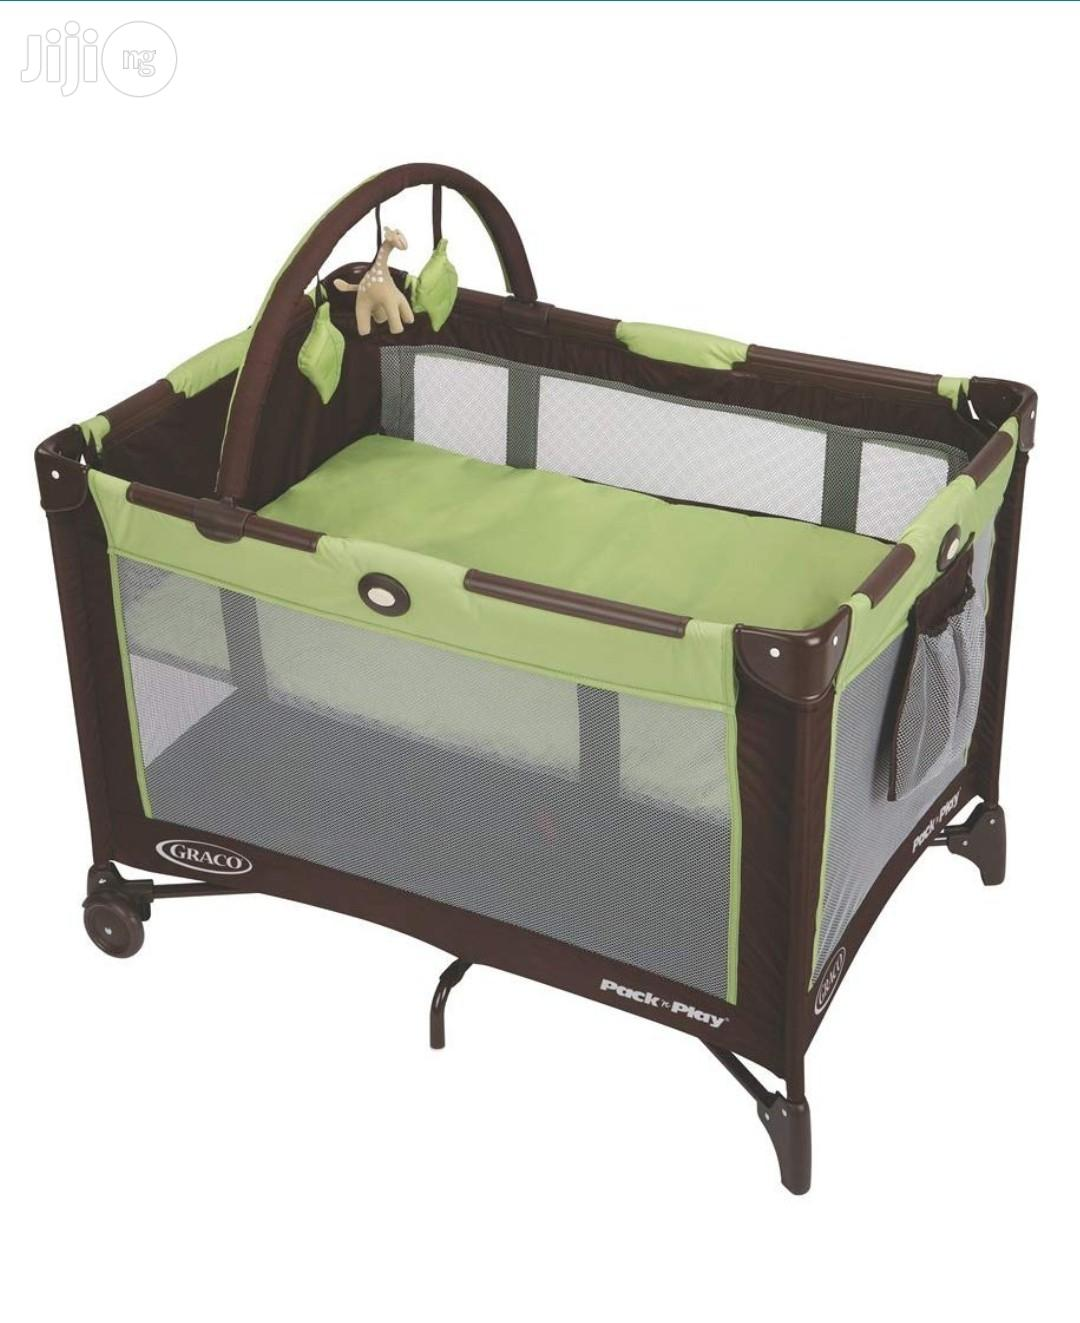 Graco Baby Bed